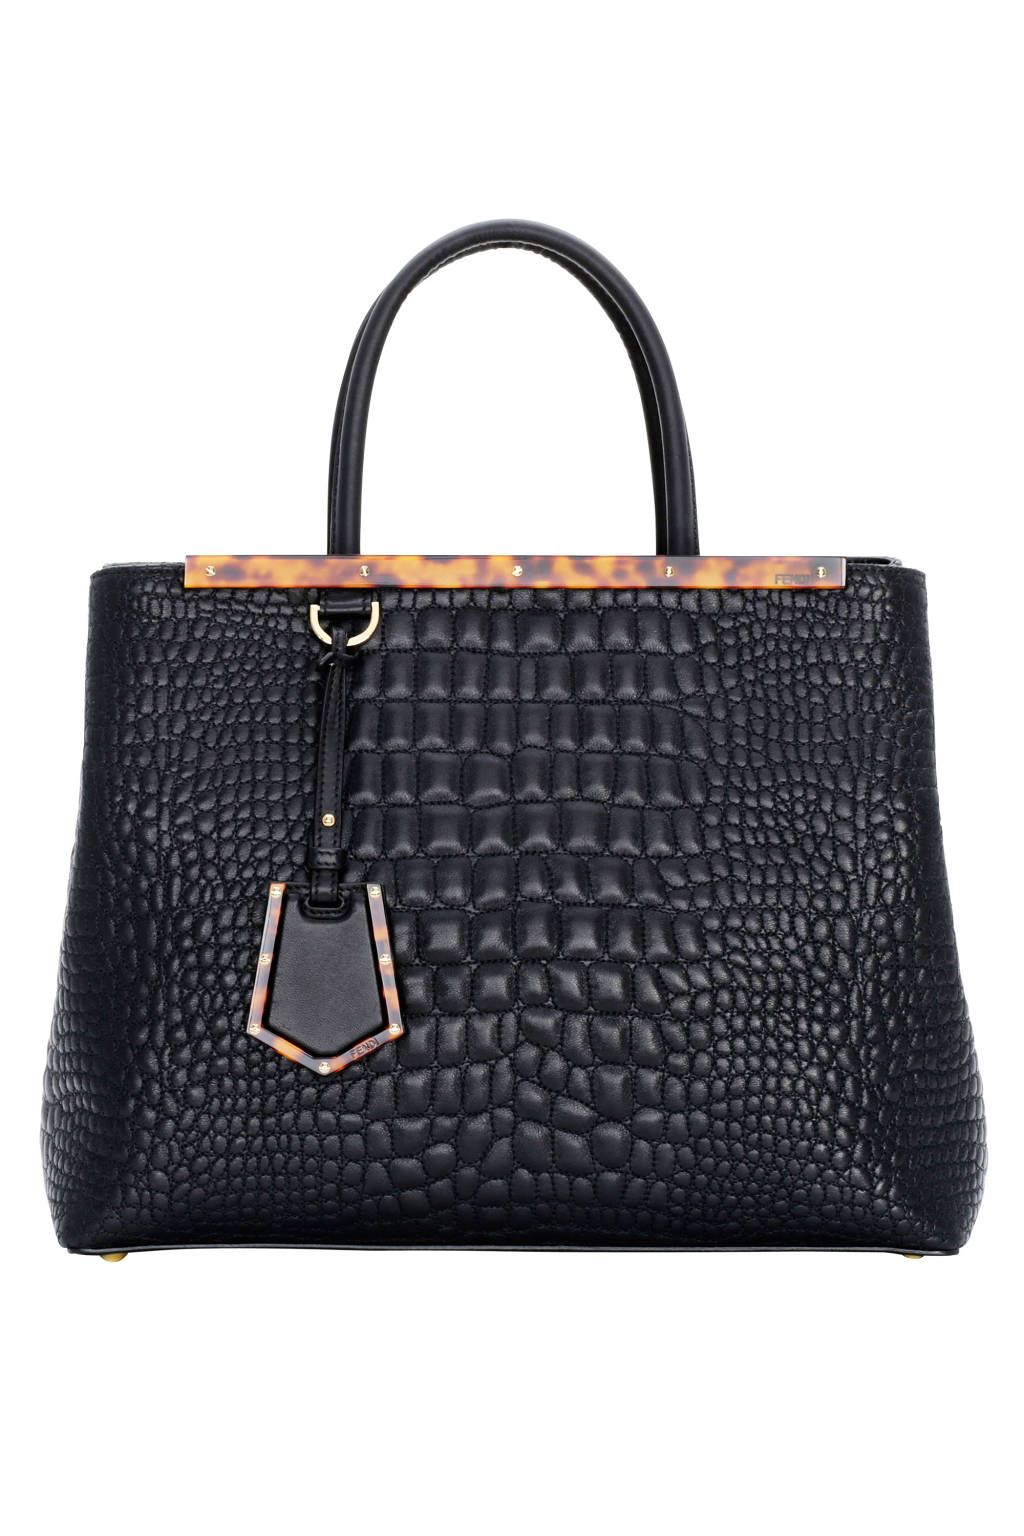 10 designer bags every woman should own | designers, bag and fendi